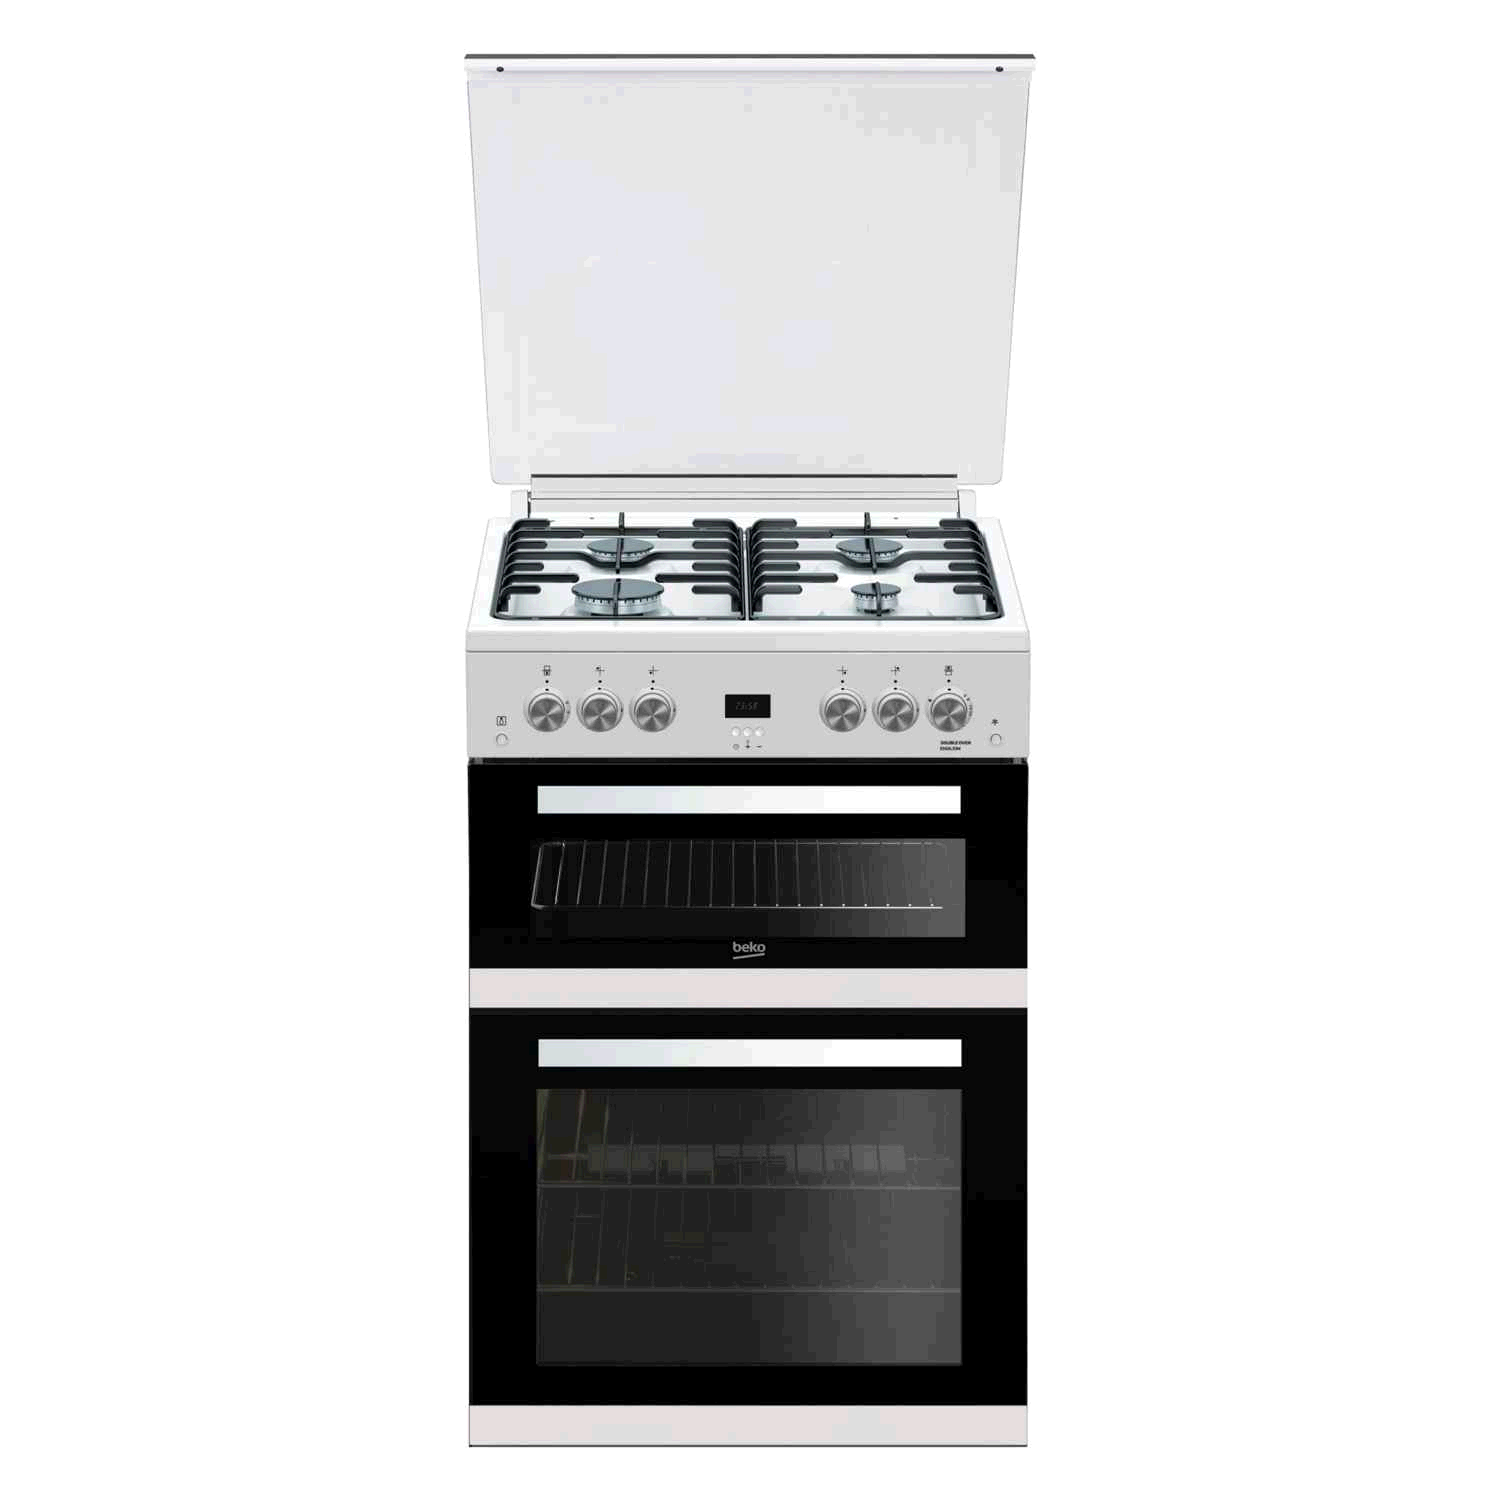 Beko Double Oven Gas Cooker White 60cm LPG Convertible Glass Lid